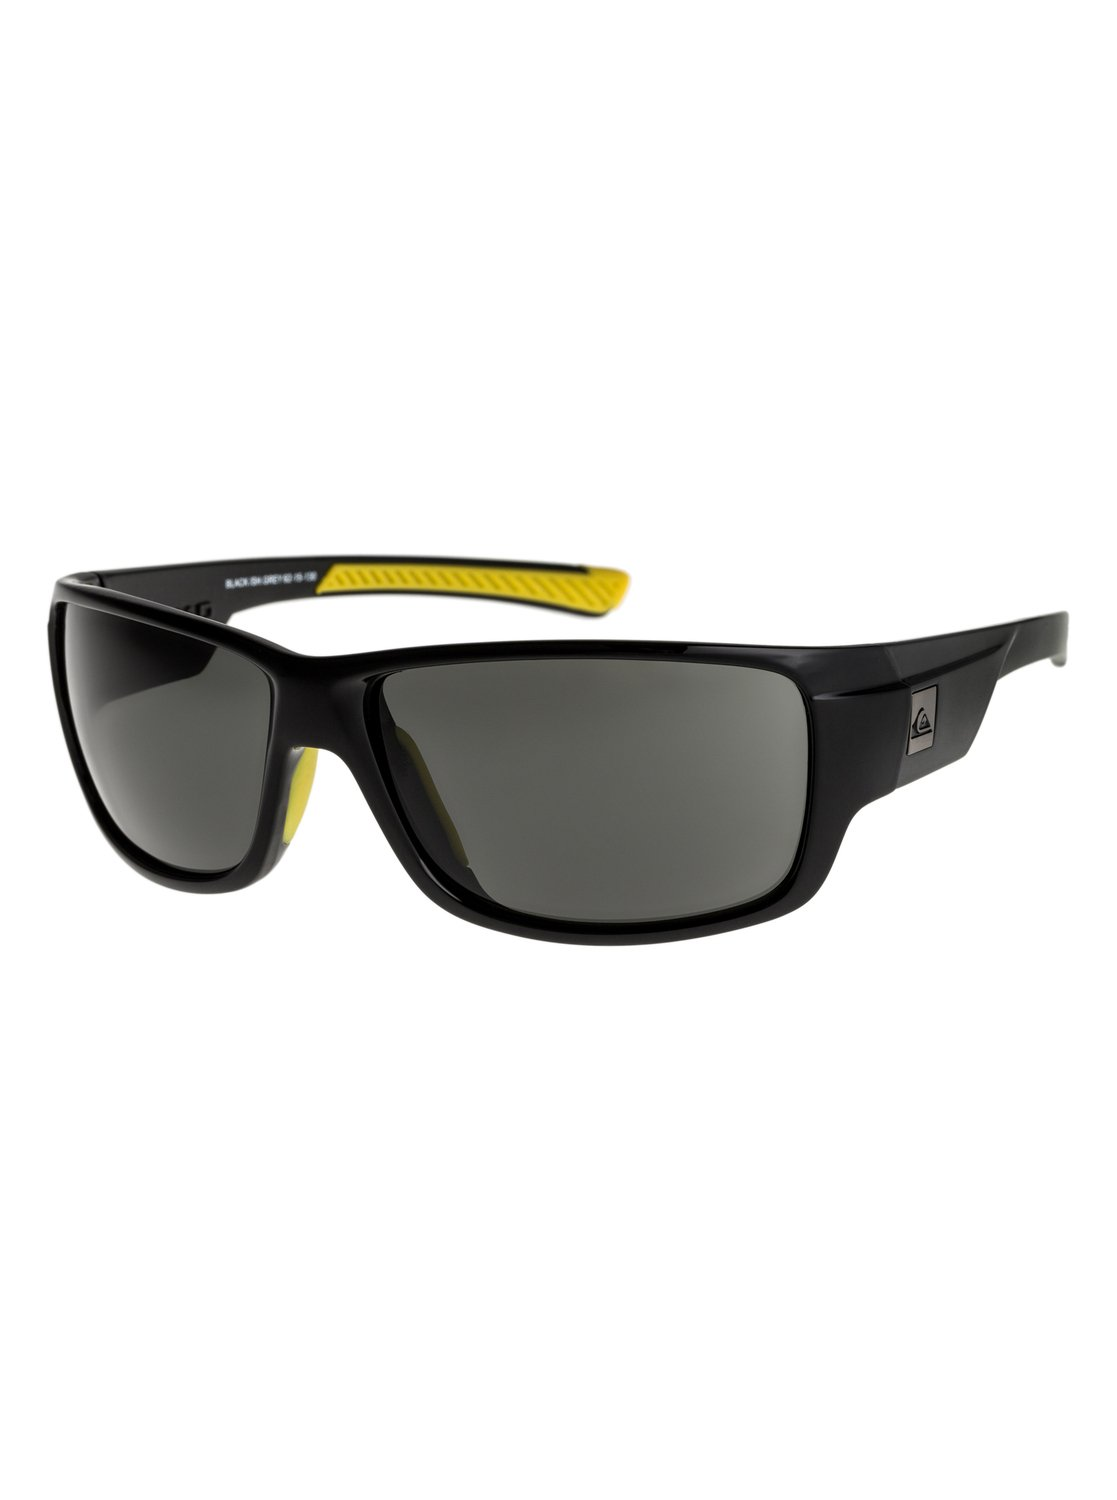 Nomad - Sunglasses от Quiksilver RU